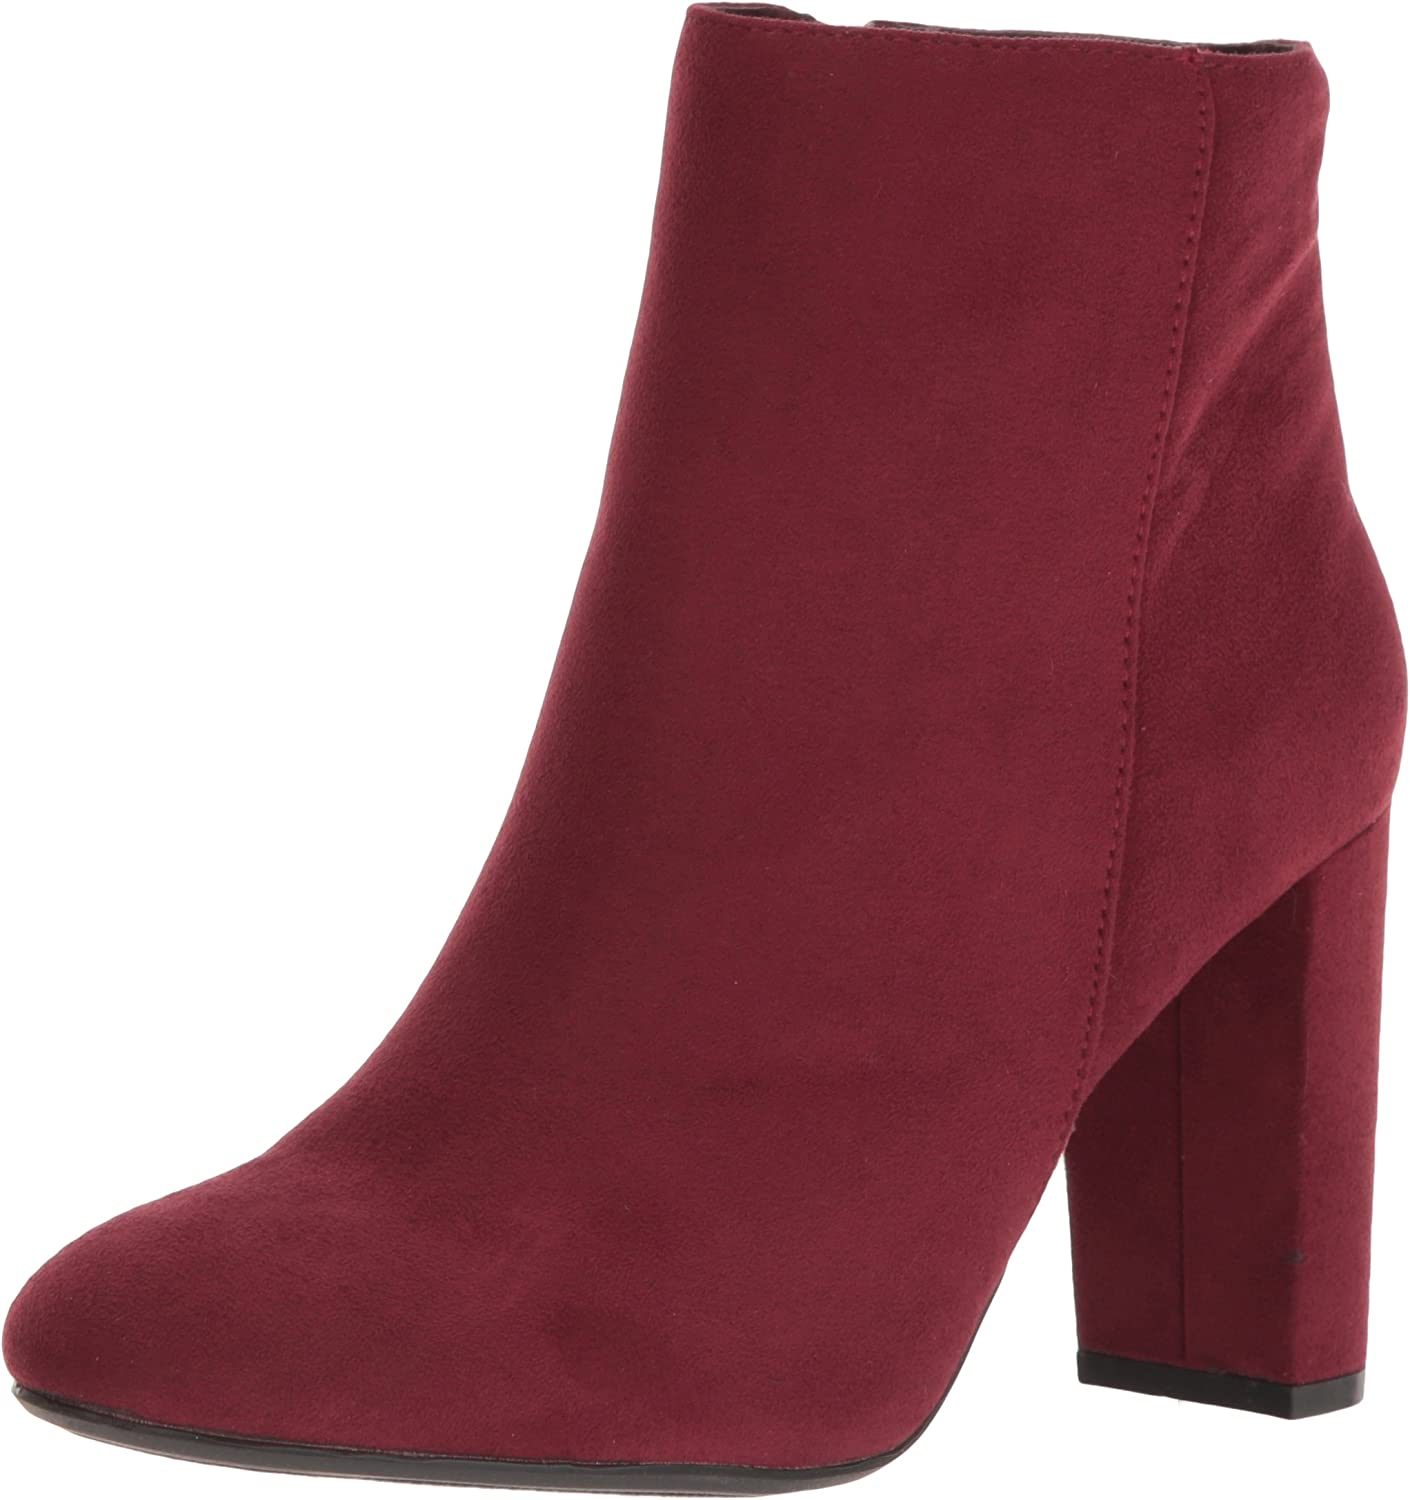 Qupid Women's York-14x Boot, Burgundy, 6 M US